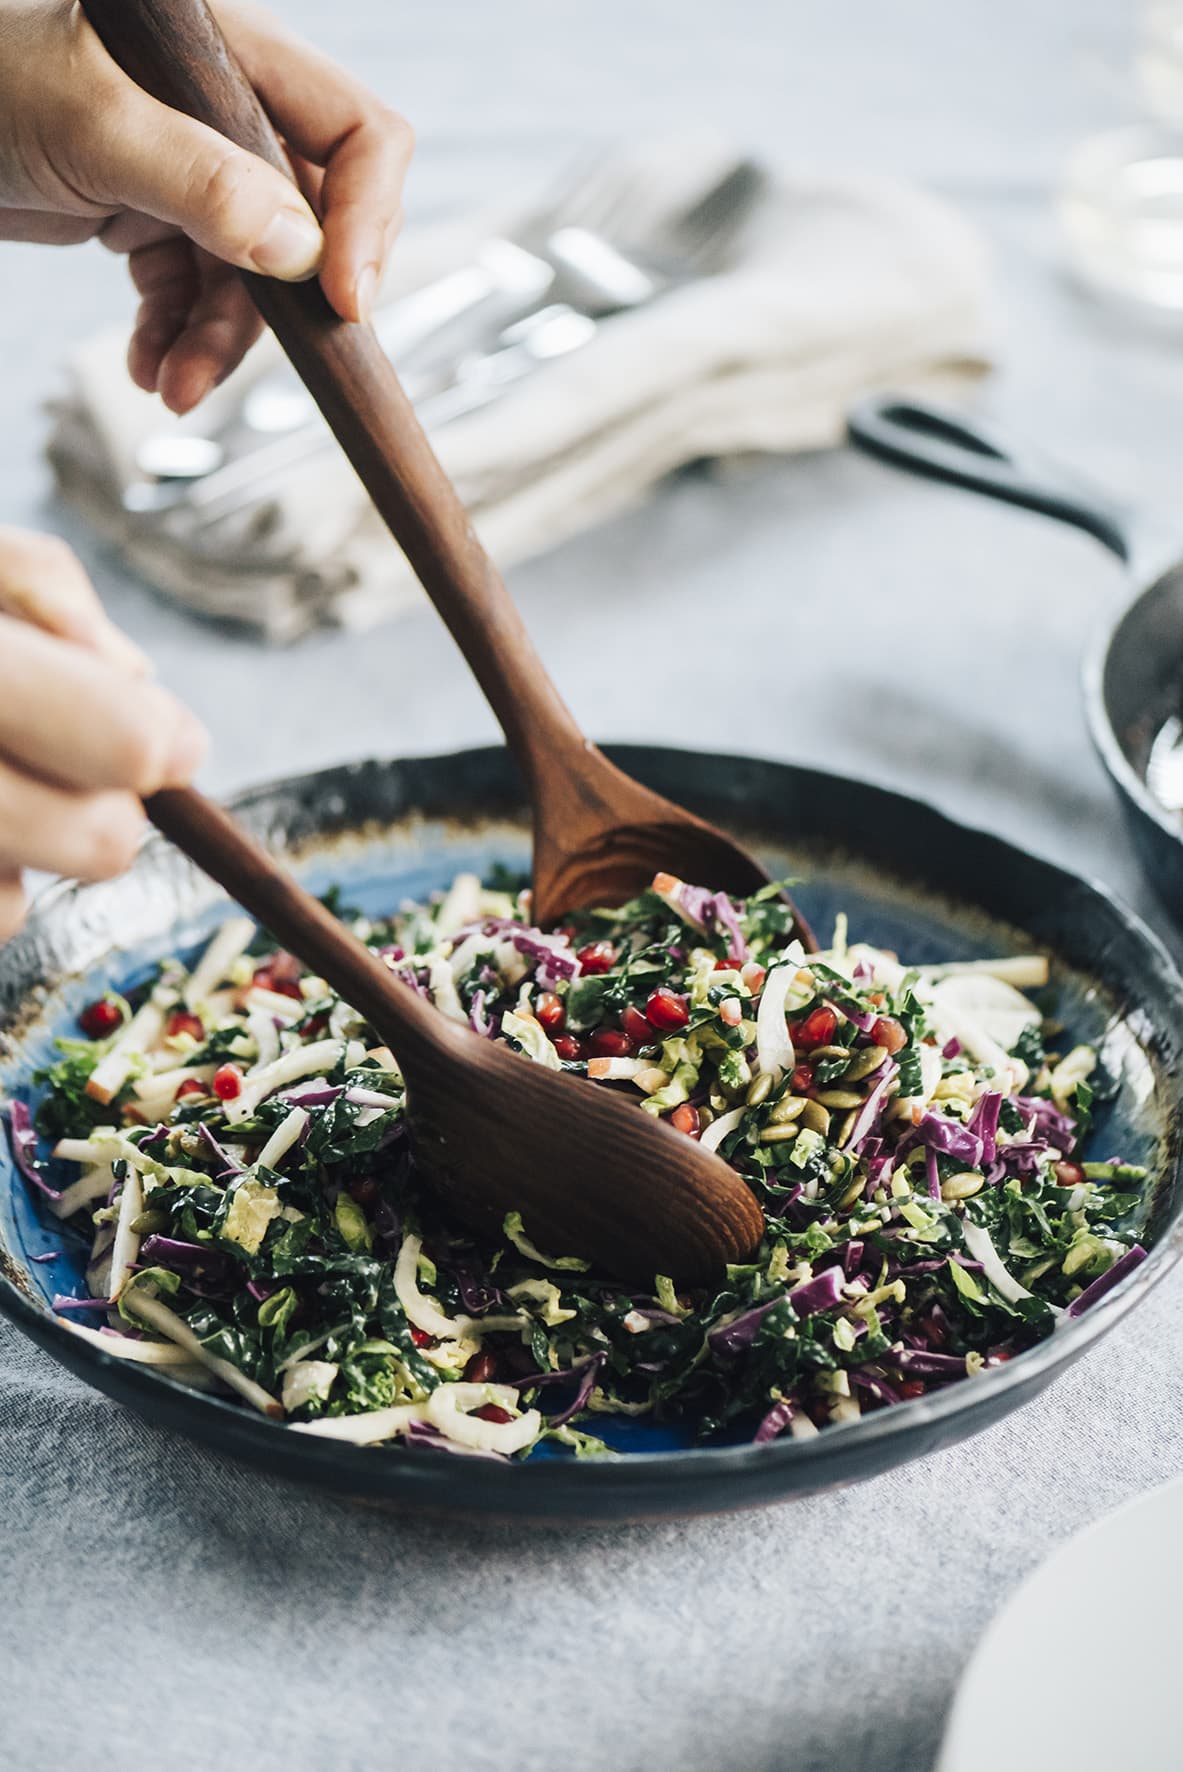 A woman's hands tossing kale pomegranate salad in a blue ceramic bowl.